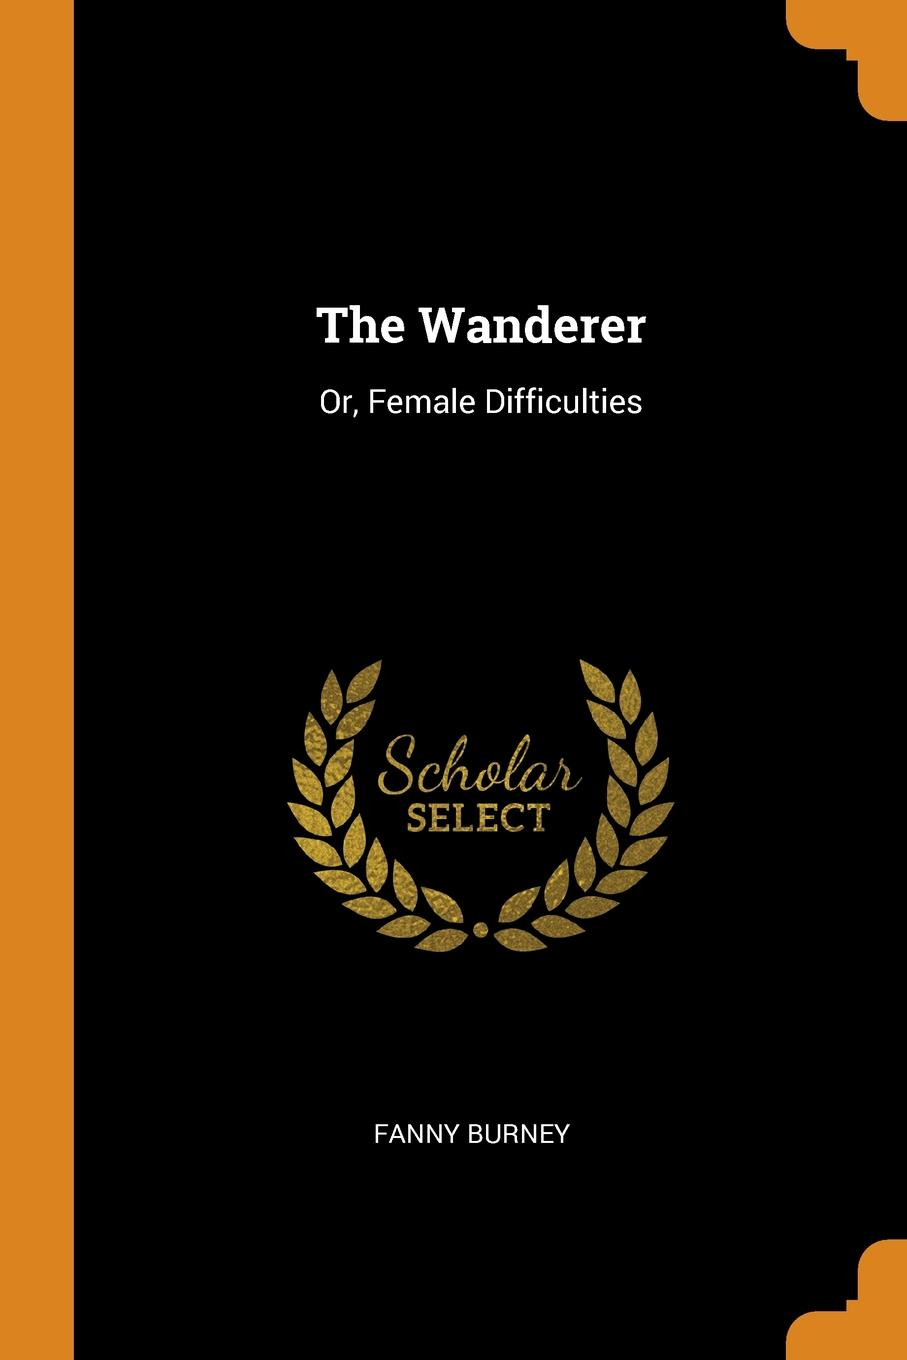 Fanny Burney The Wanderer. Or, Female Difficulties